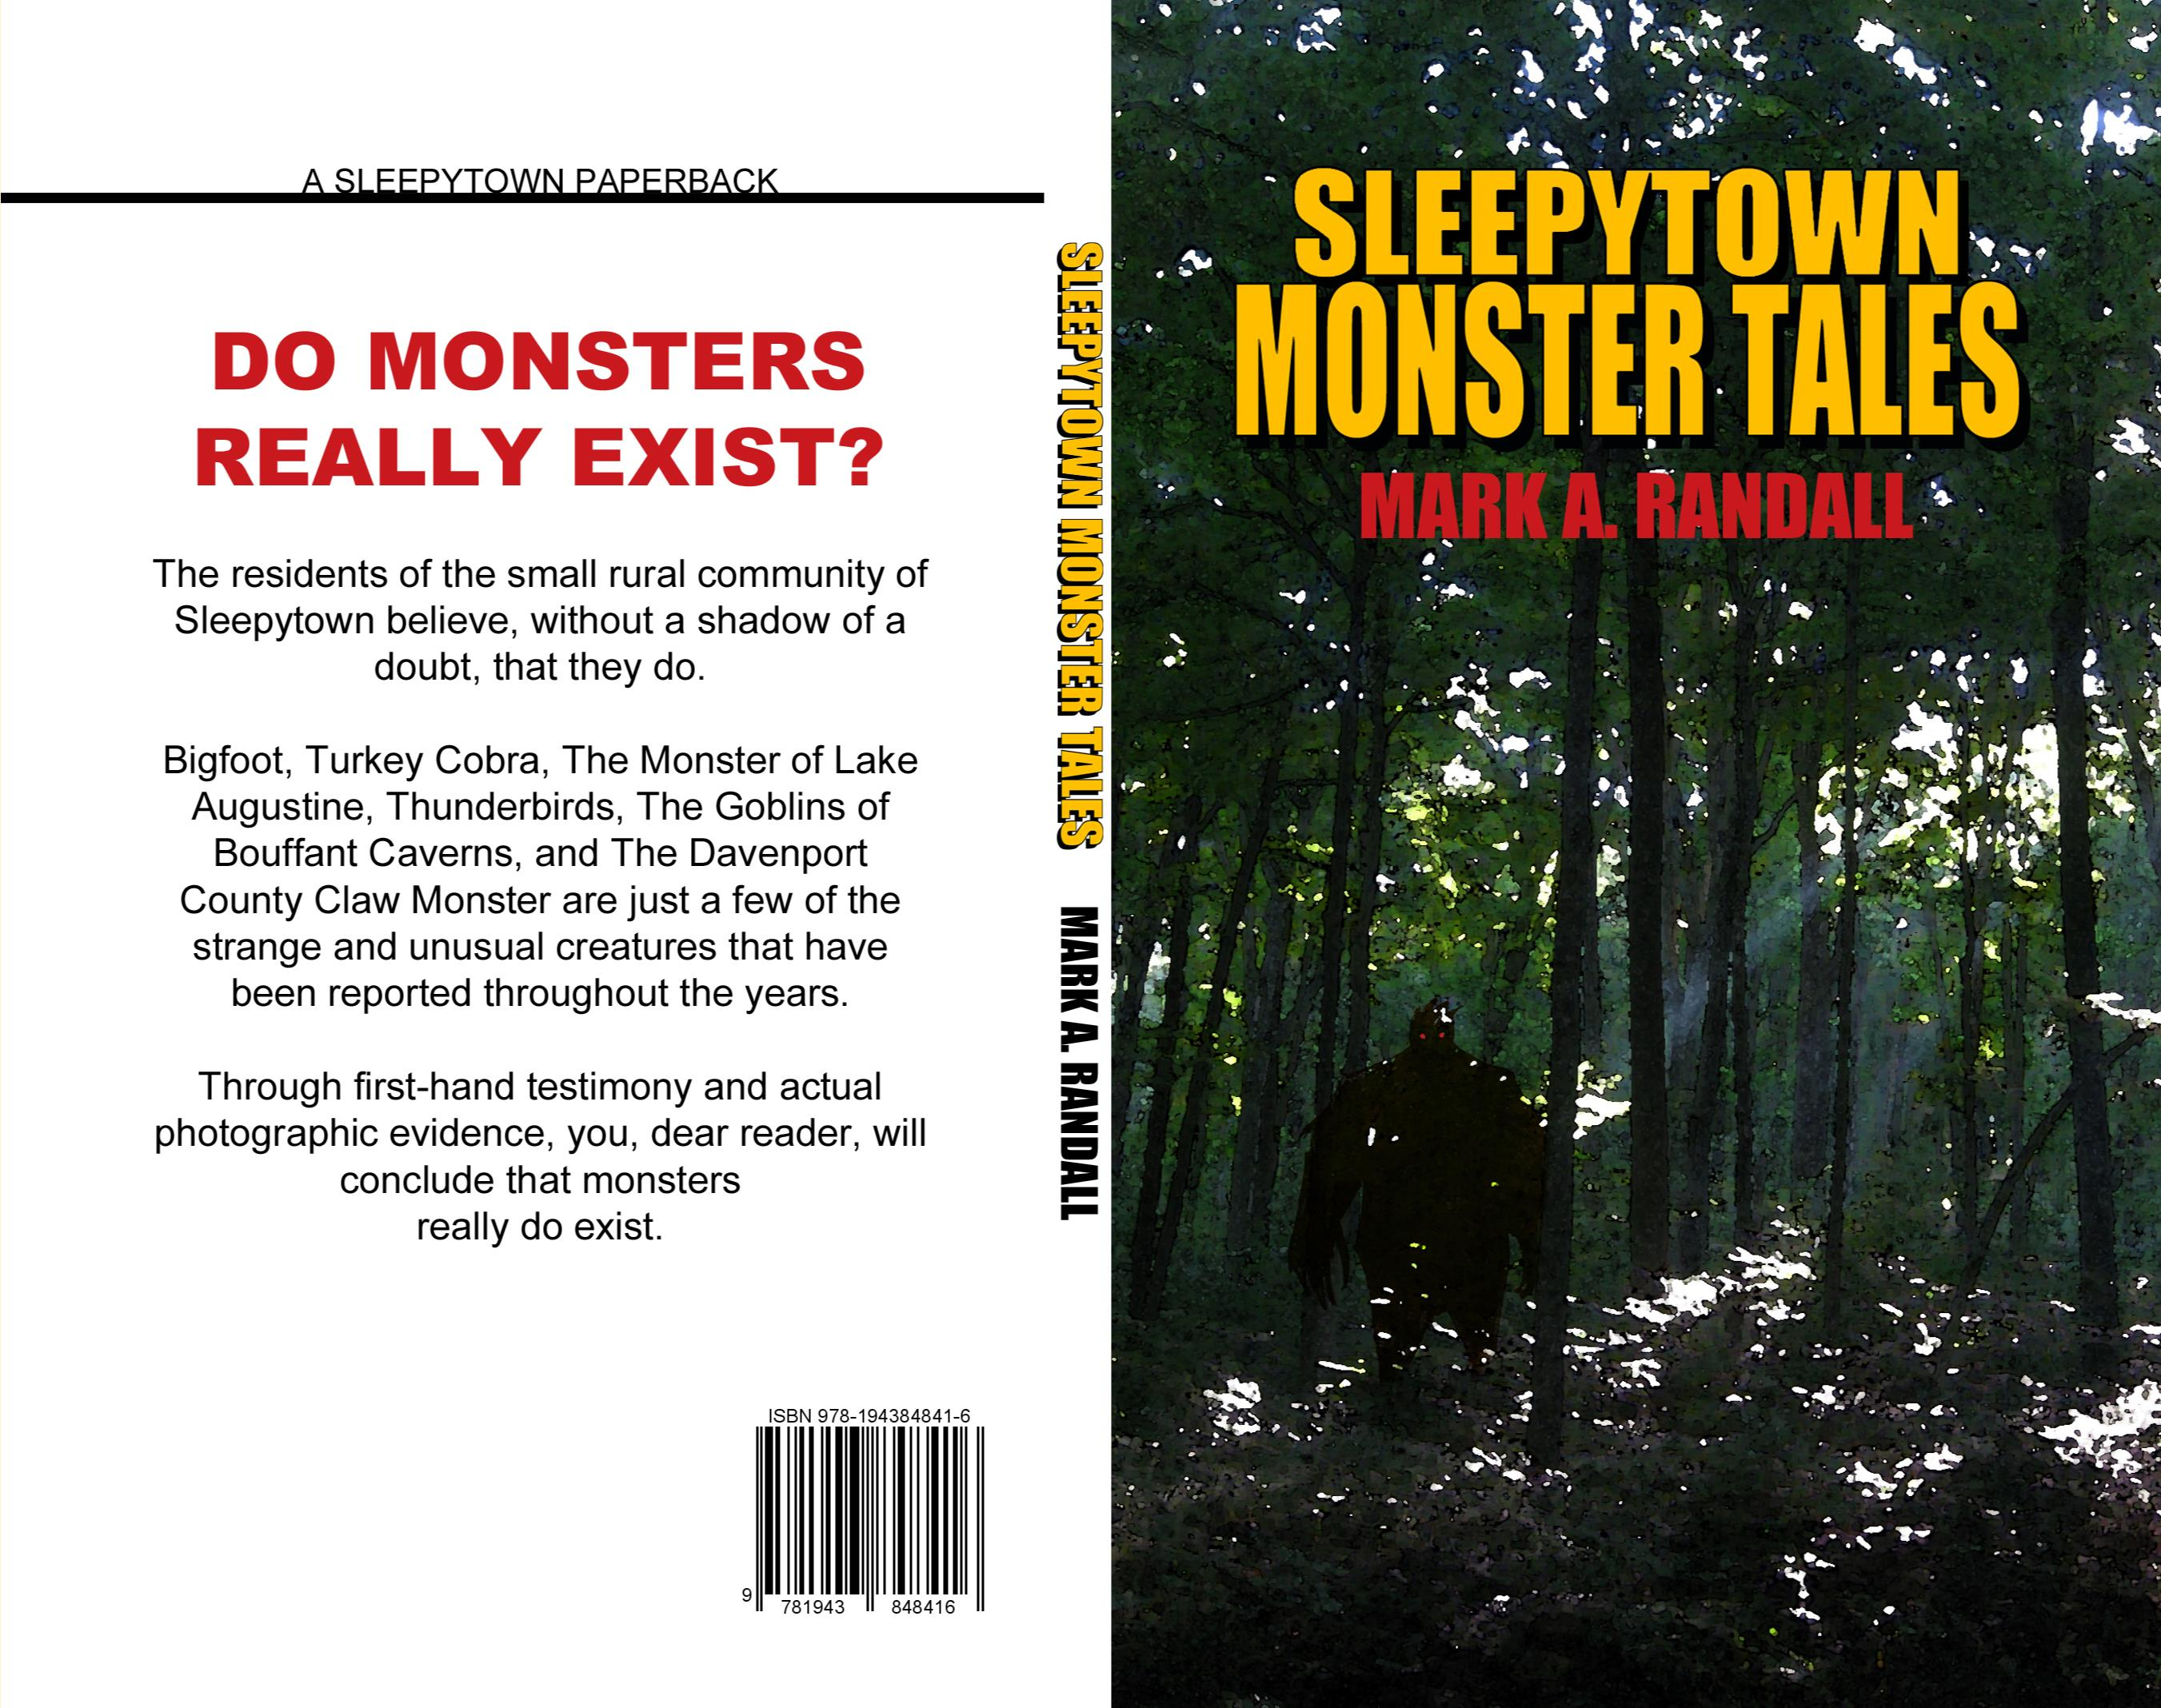 Sleepytown Monster Tales cover image